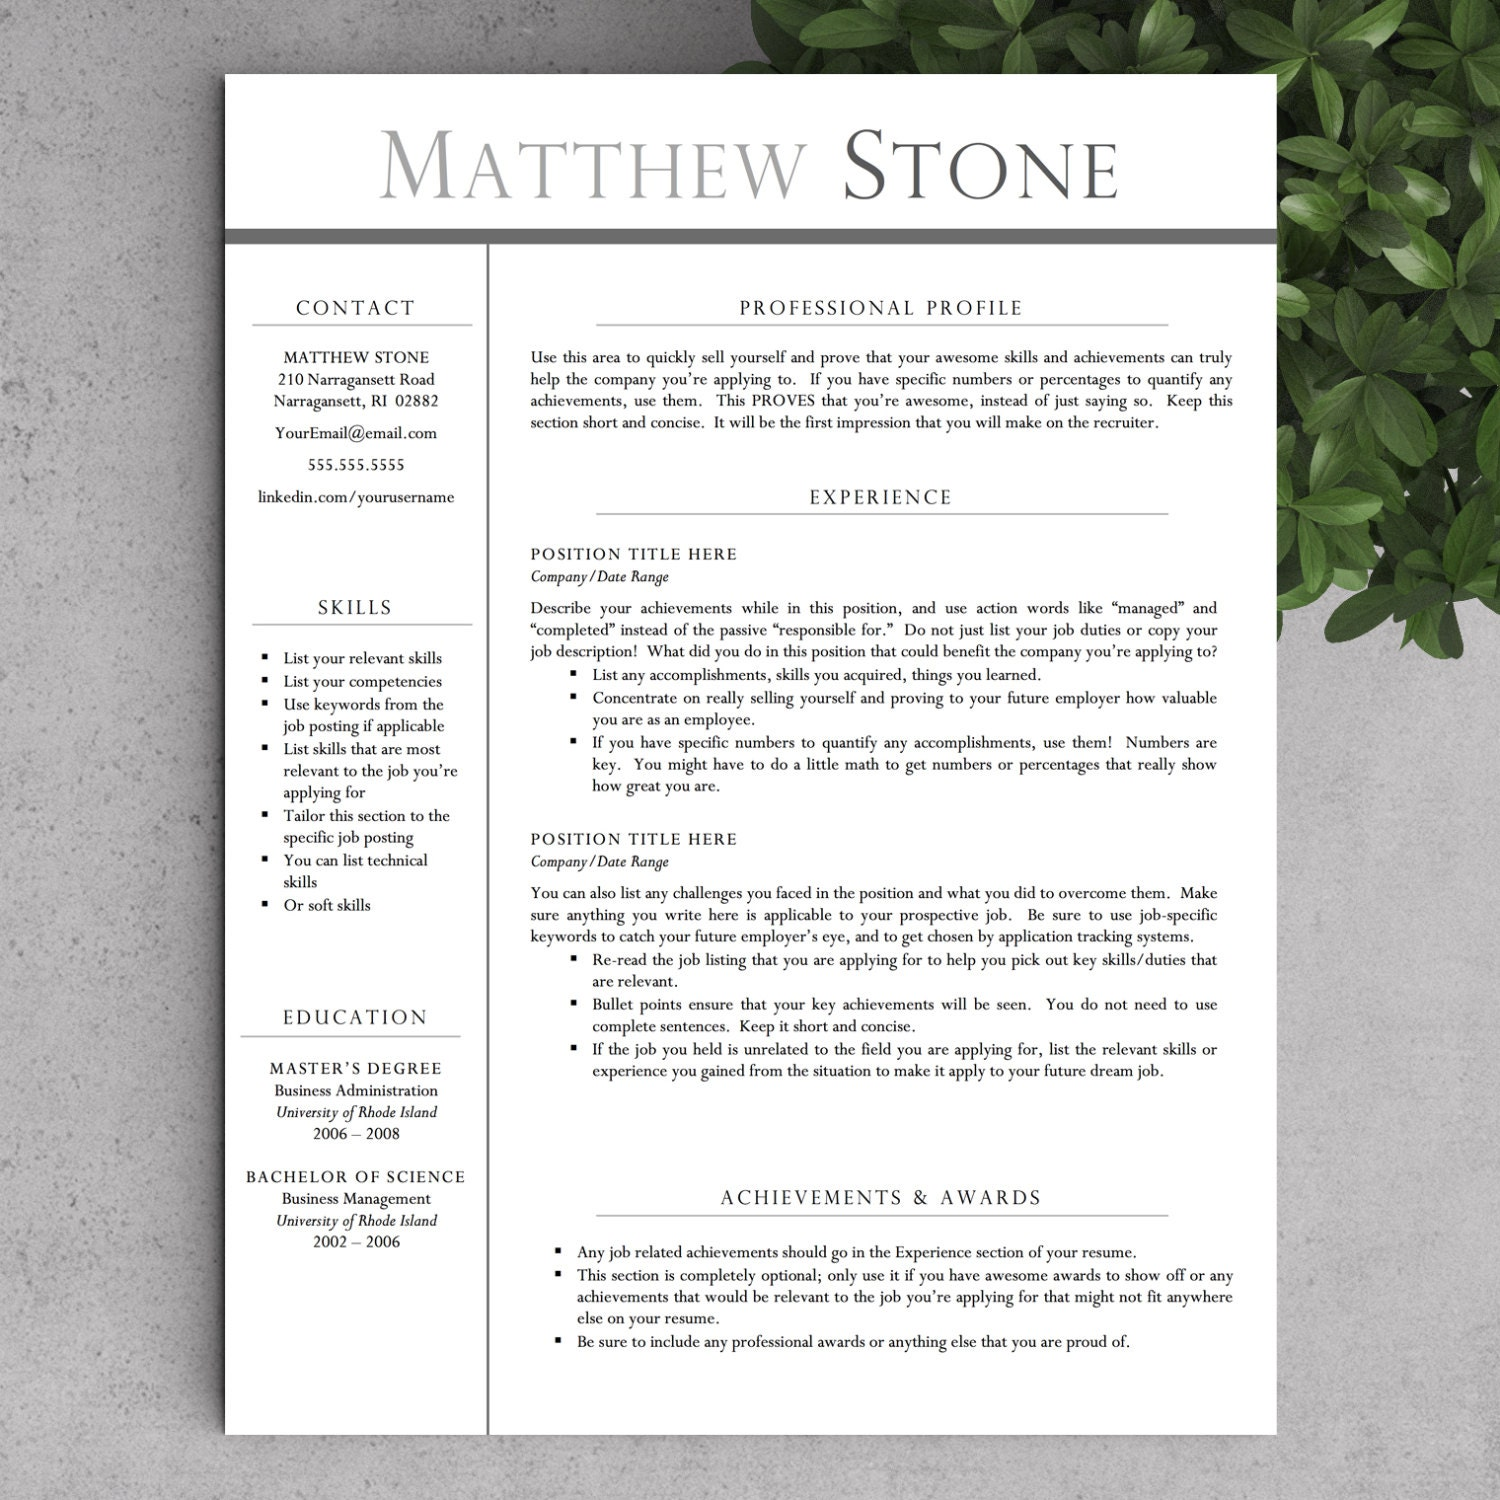 Professional Resume Word Template: Professional Resume Template For Word US By LandedDesignStudio